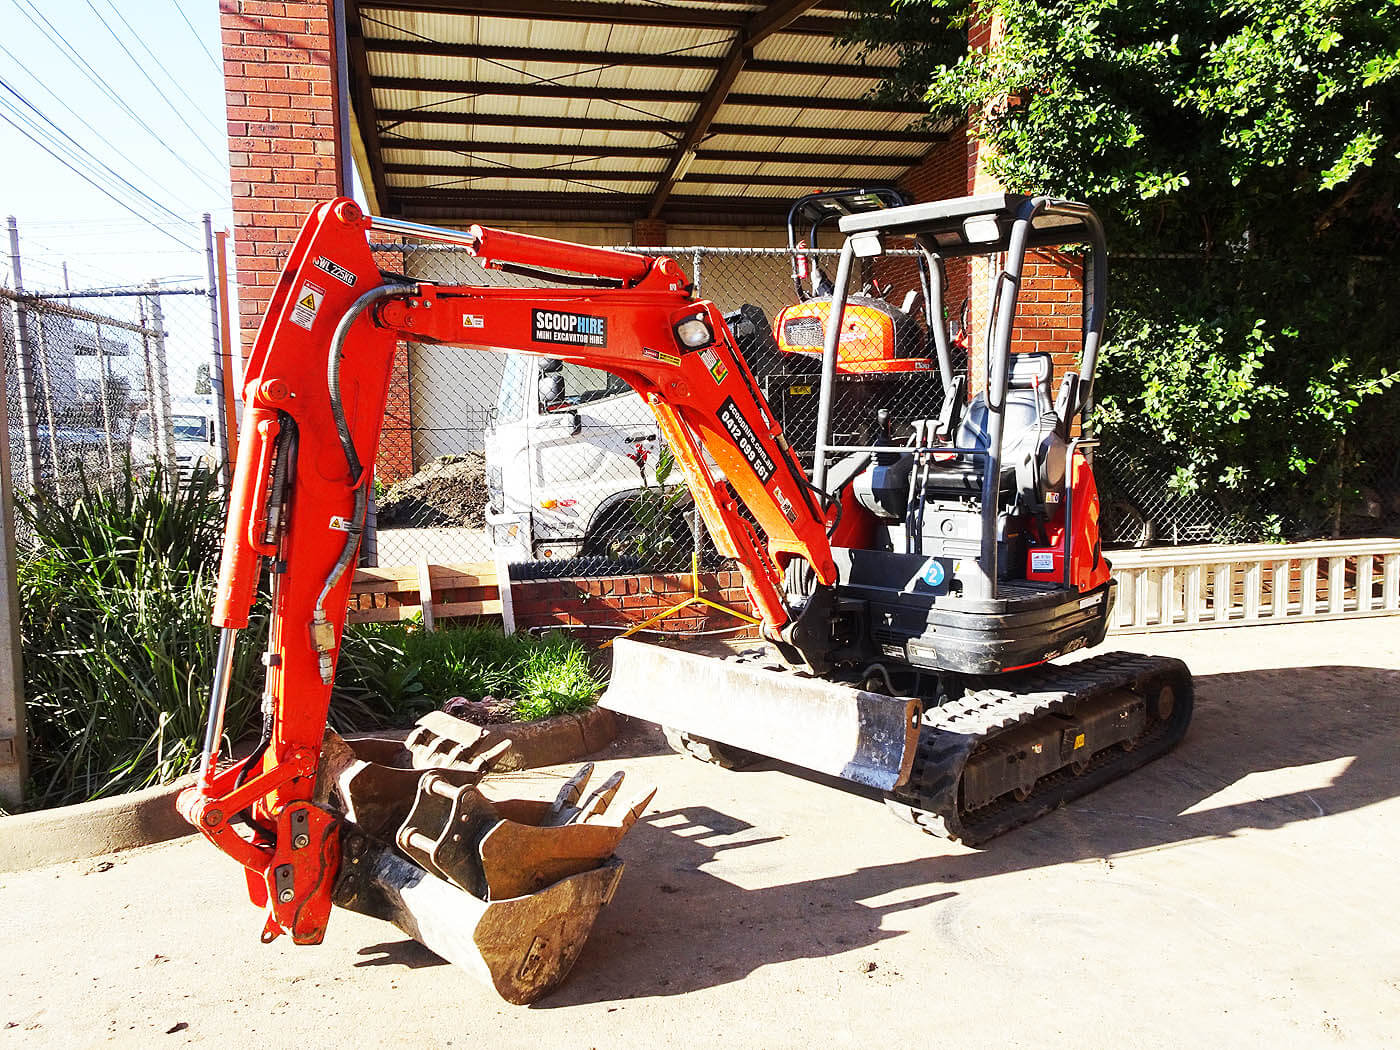 The Types Of Home Improvement Projects A Mini Excavator Can Handle.